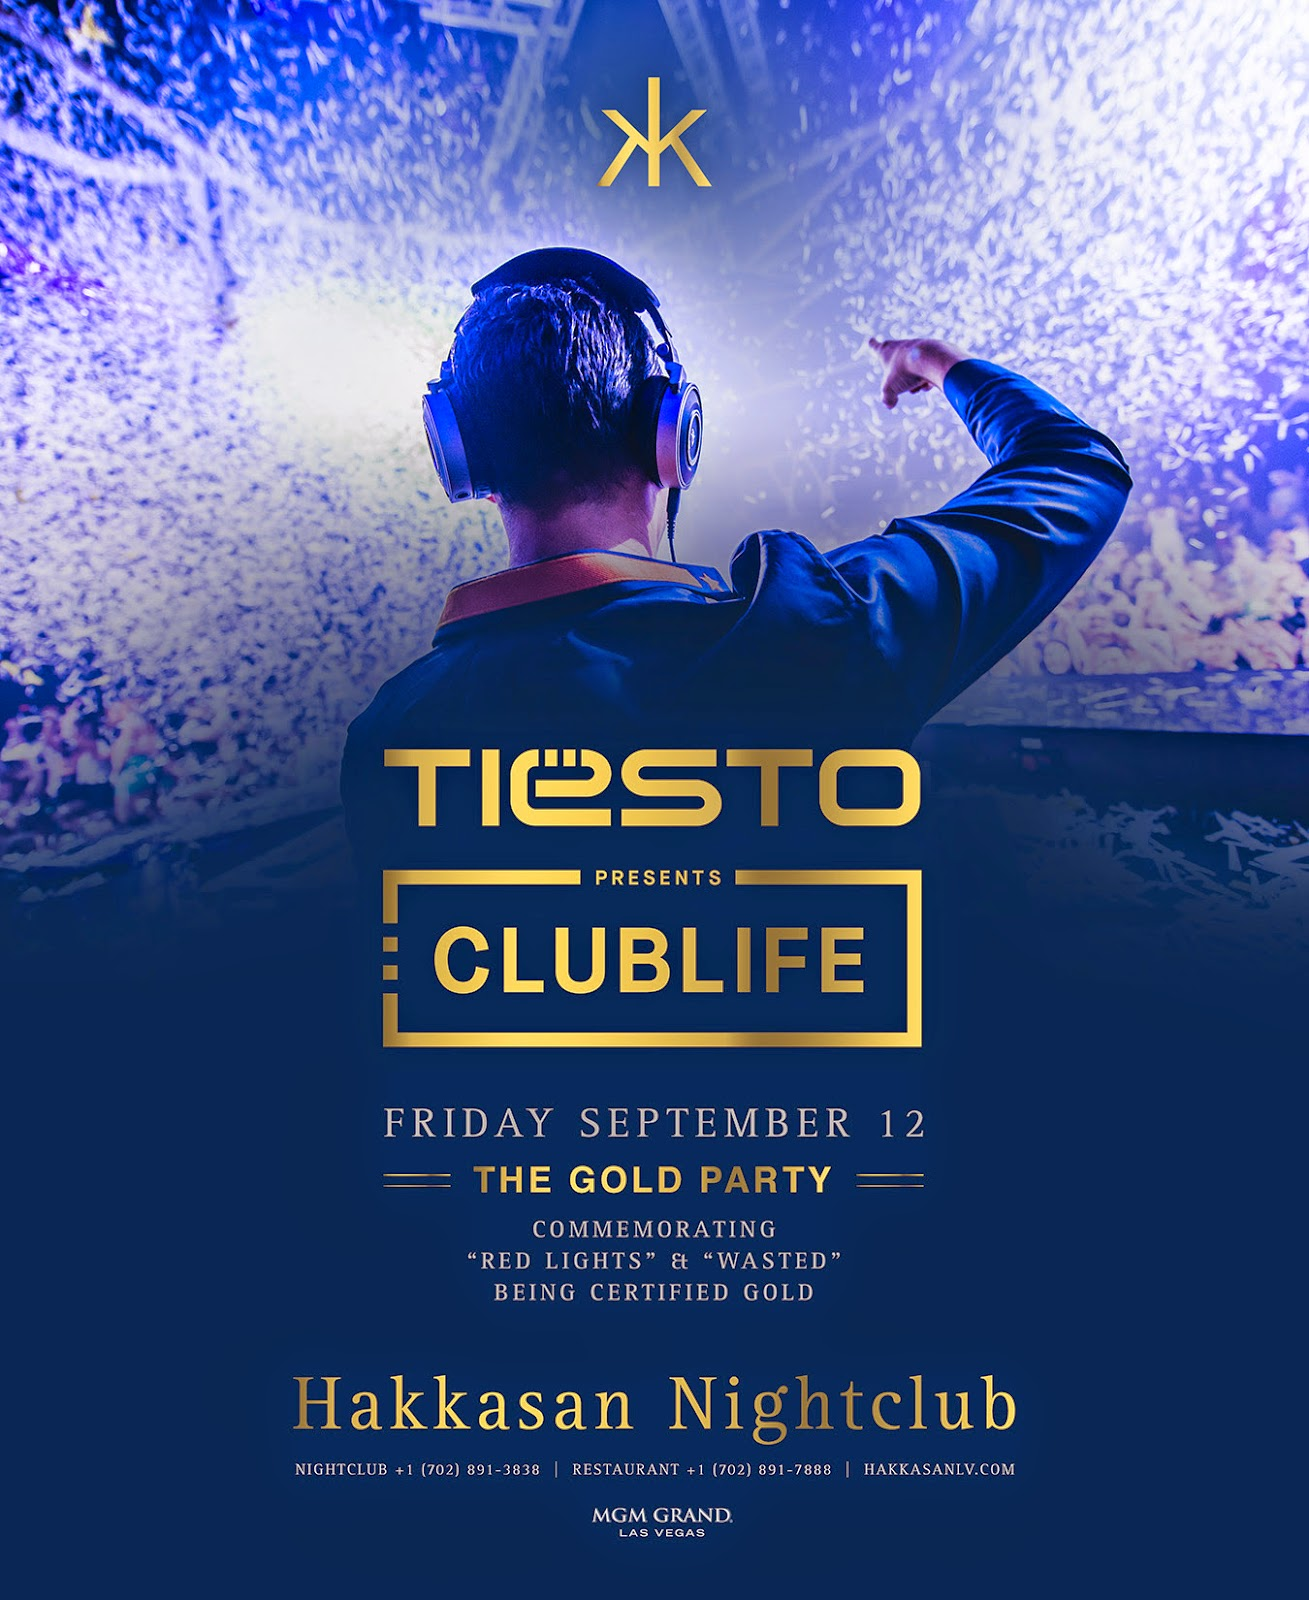 """TIËSTO'S """"WASTED"""" FEATURING MATTHEW KOMA AND """"RED LIGHTS"""" OFFICIALLY CERTIFIED GOLD"""